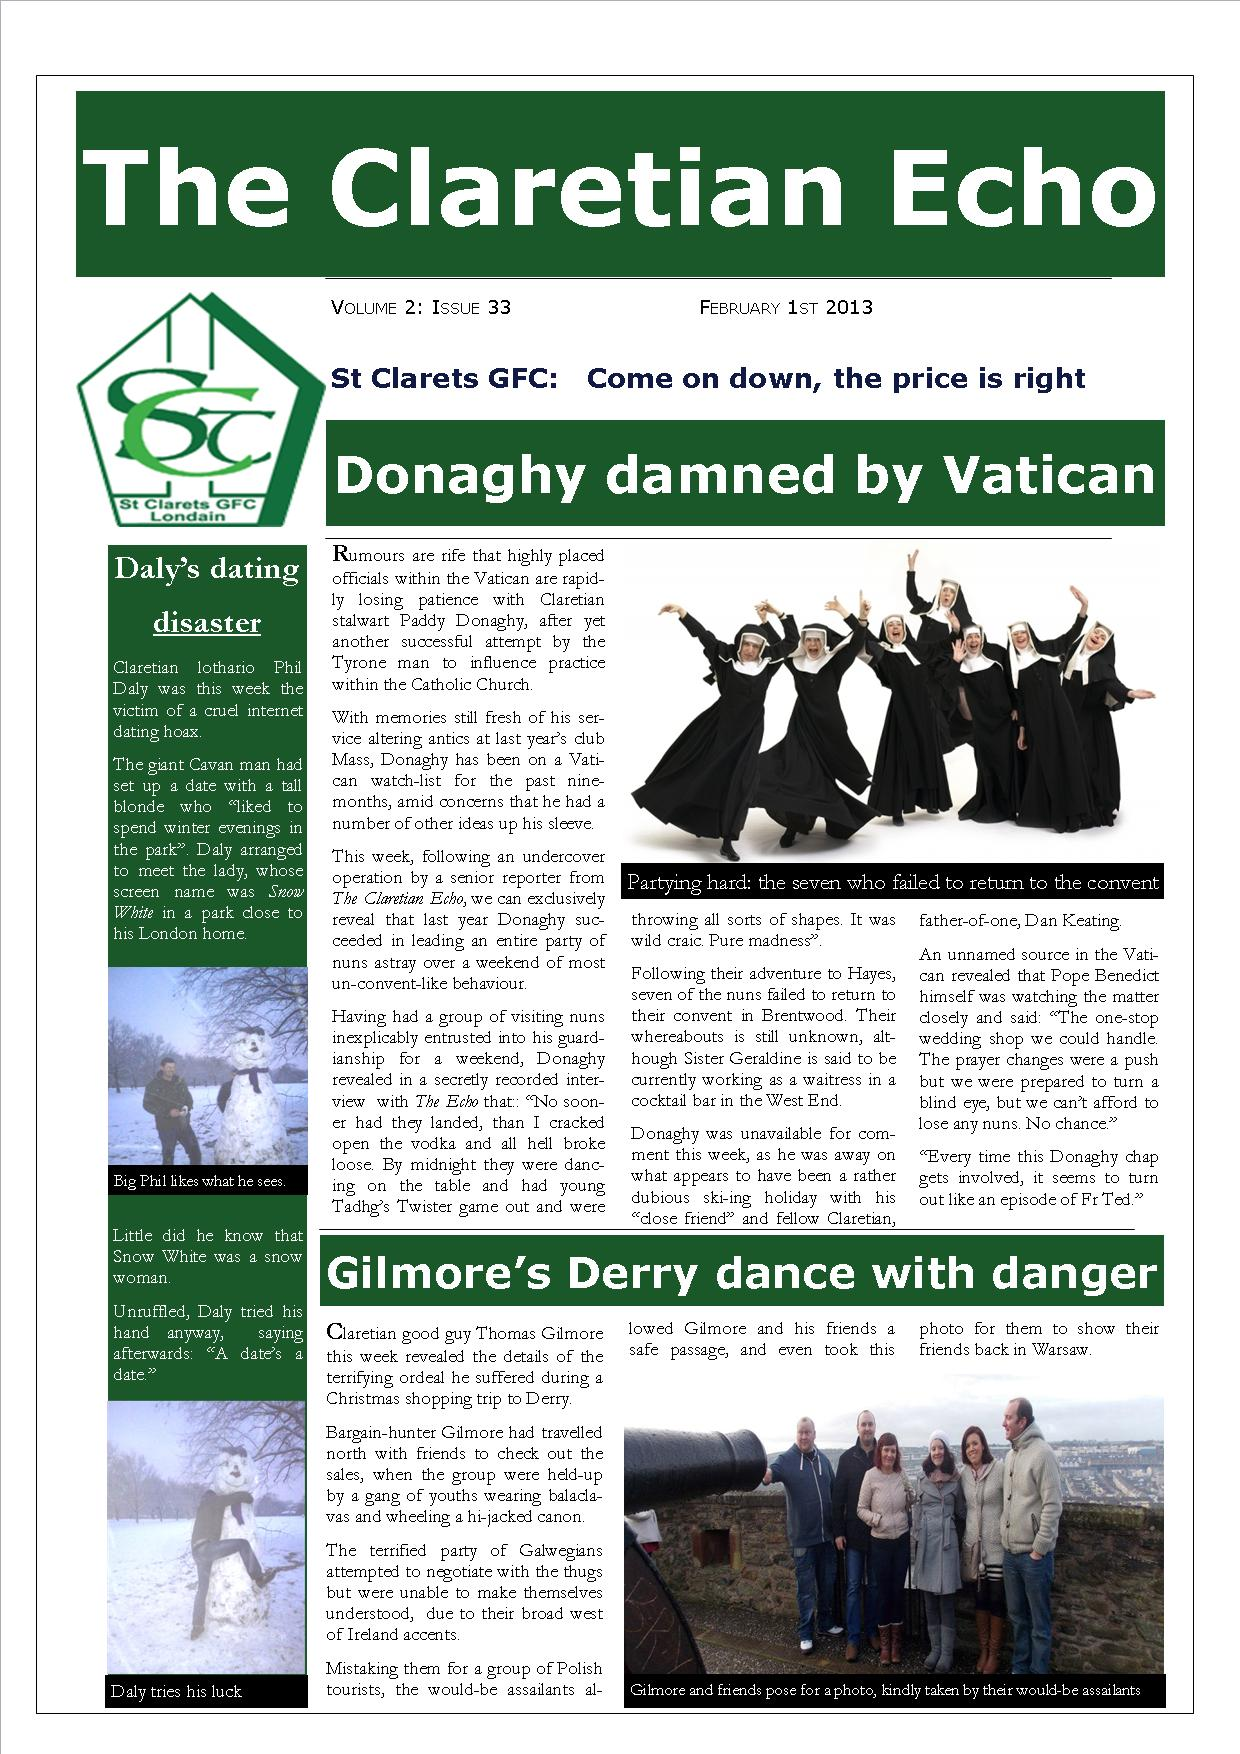 Claretian Echo Issue 33. The weekly newsletter from St Clarets GFC in London. London's best GAA club. A Gaelic football club to be proud of.